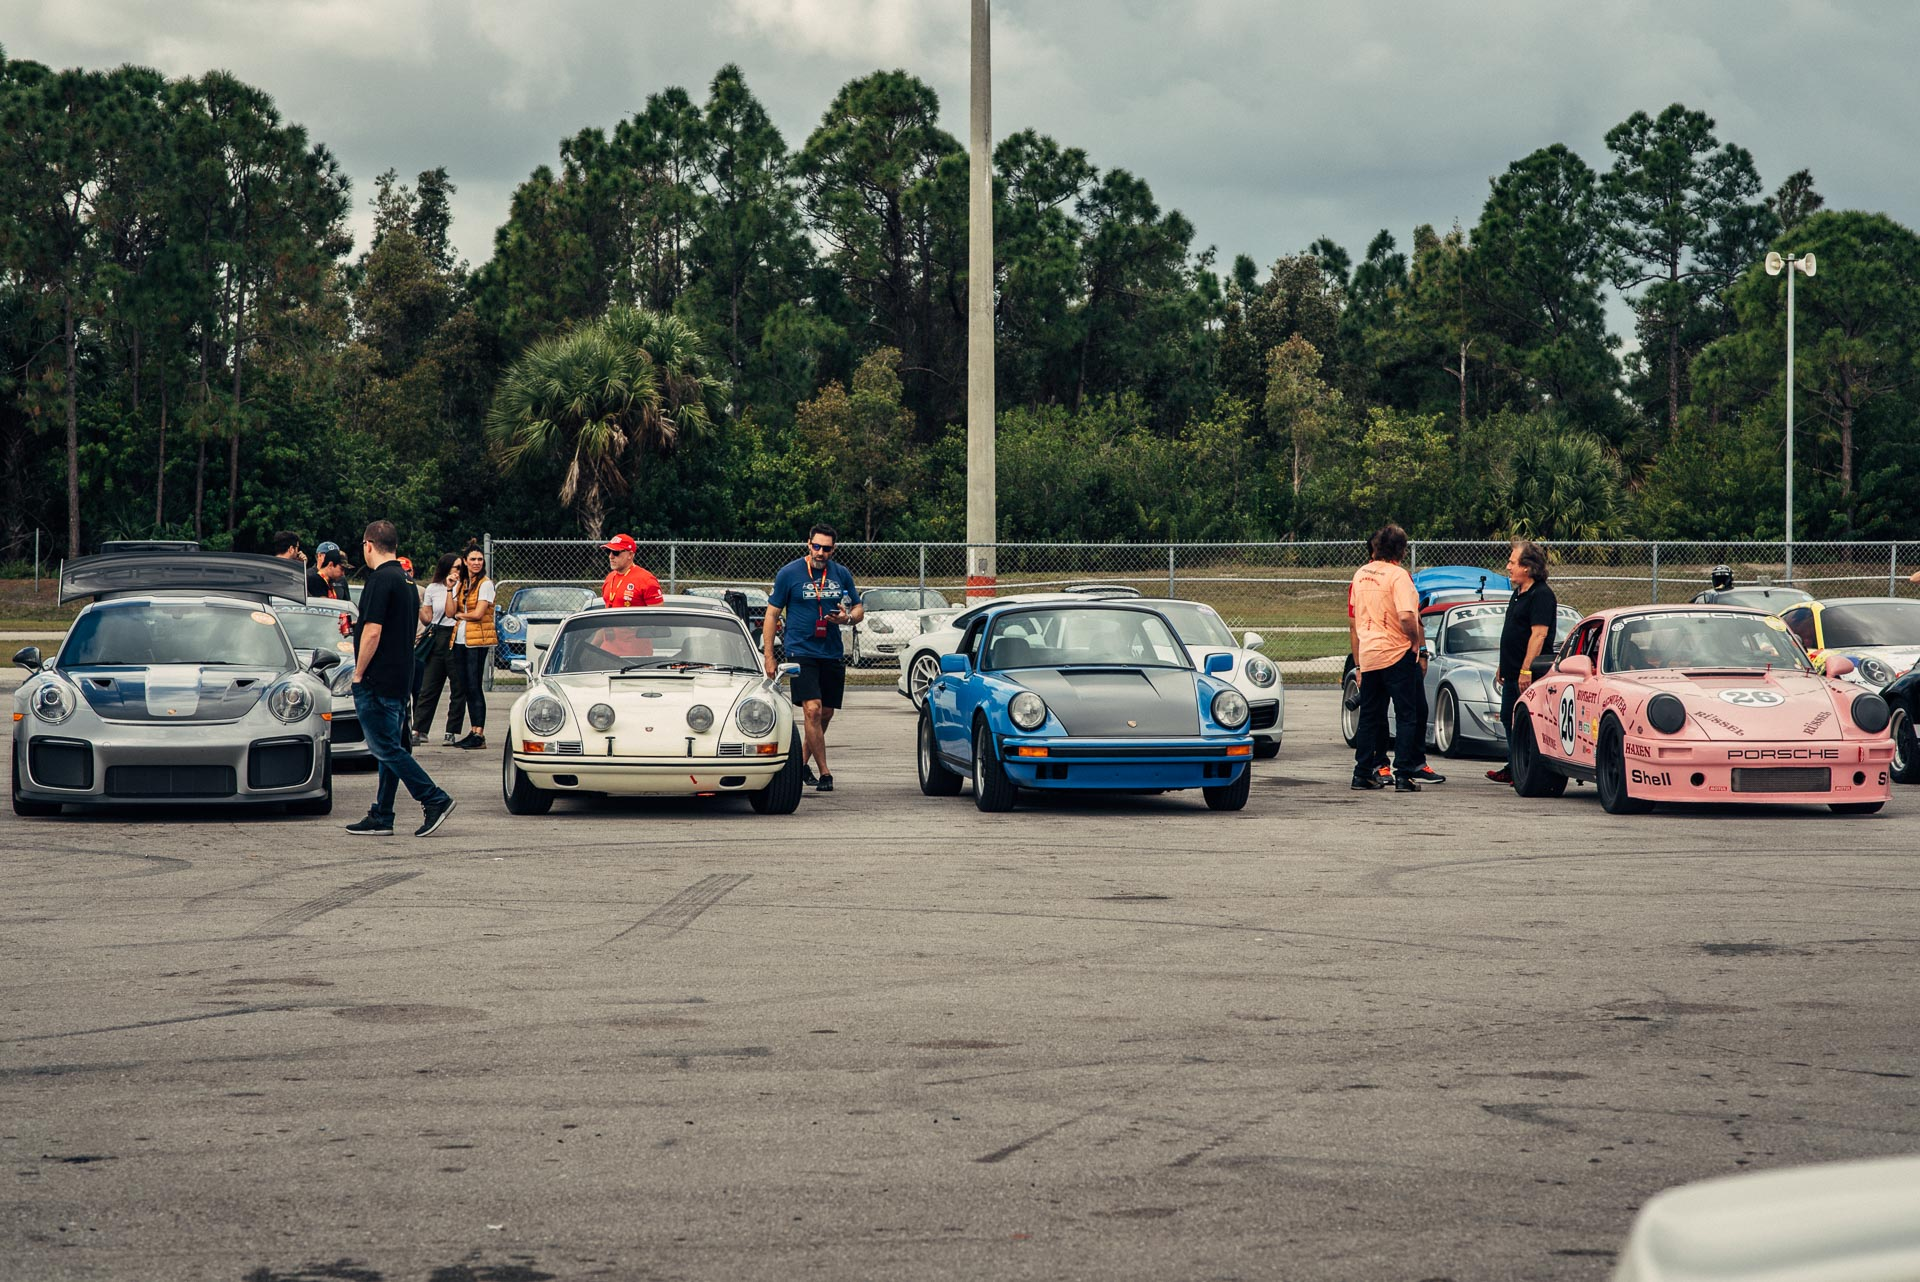 Porsches lined up at DRT Das Renn Treffen 2019